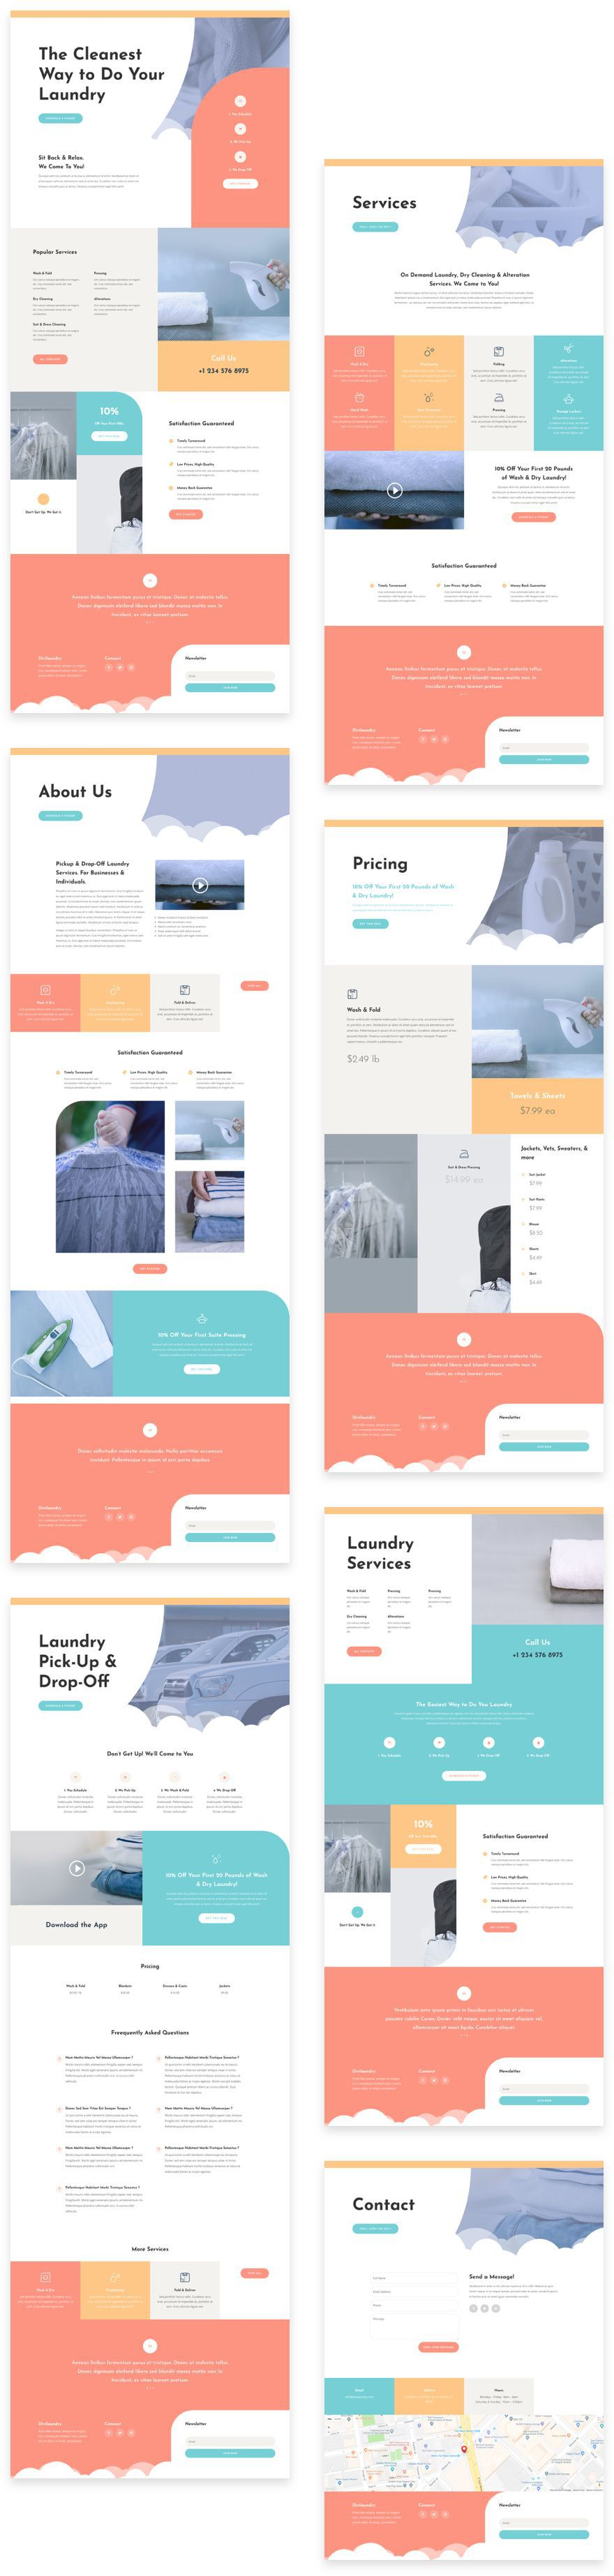 Divi Laundry Service Layout Pack